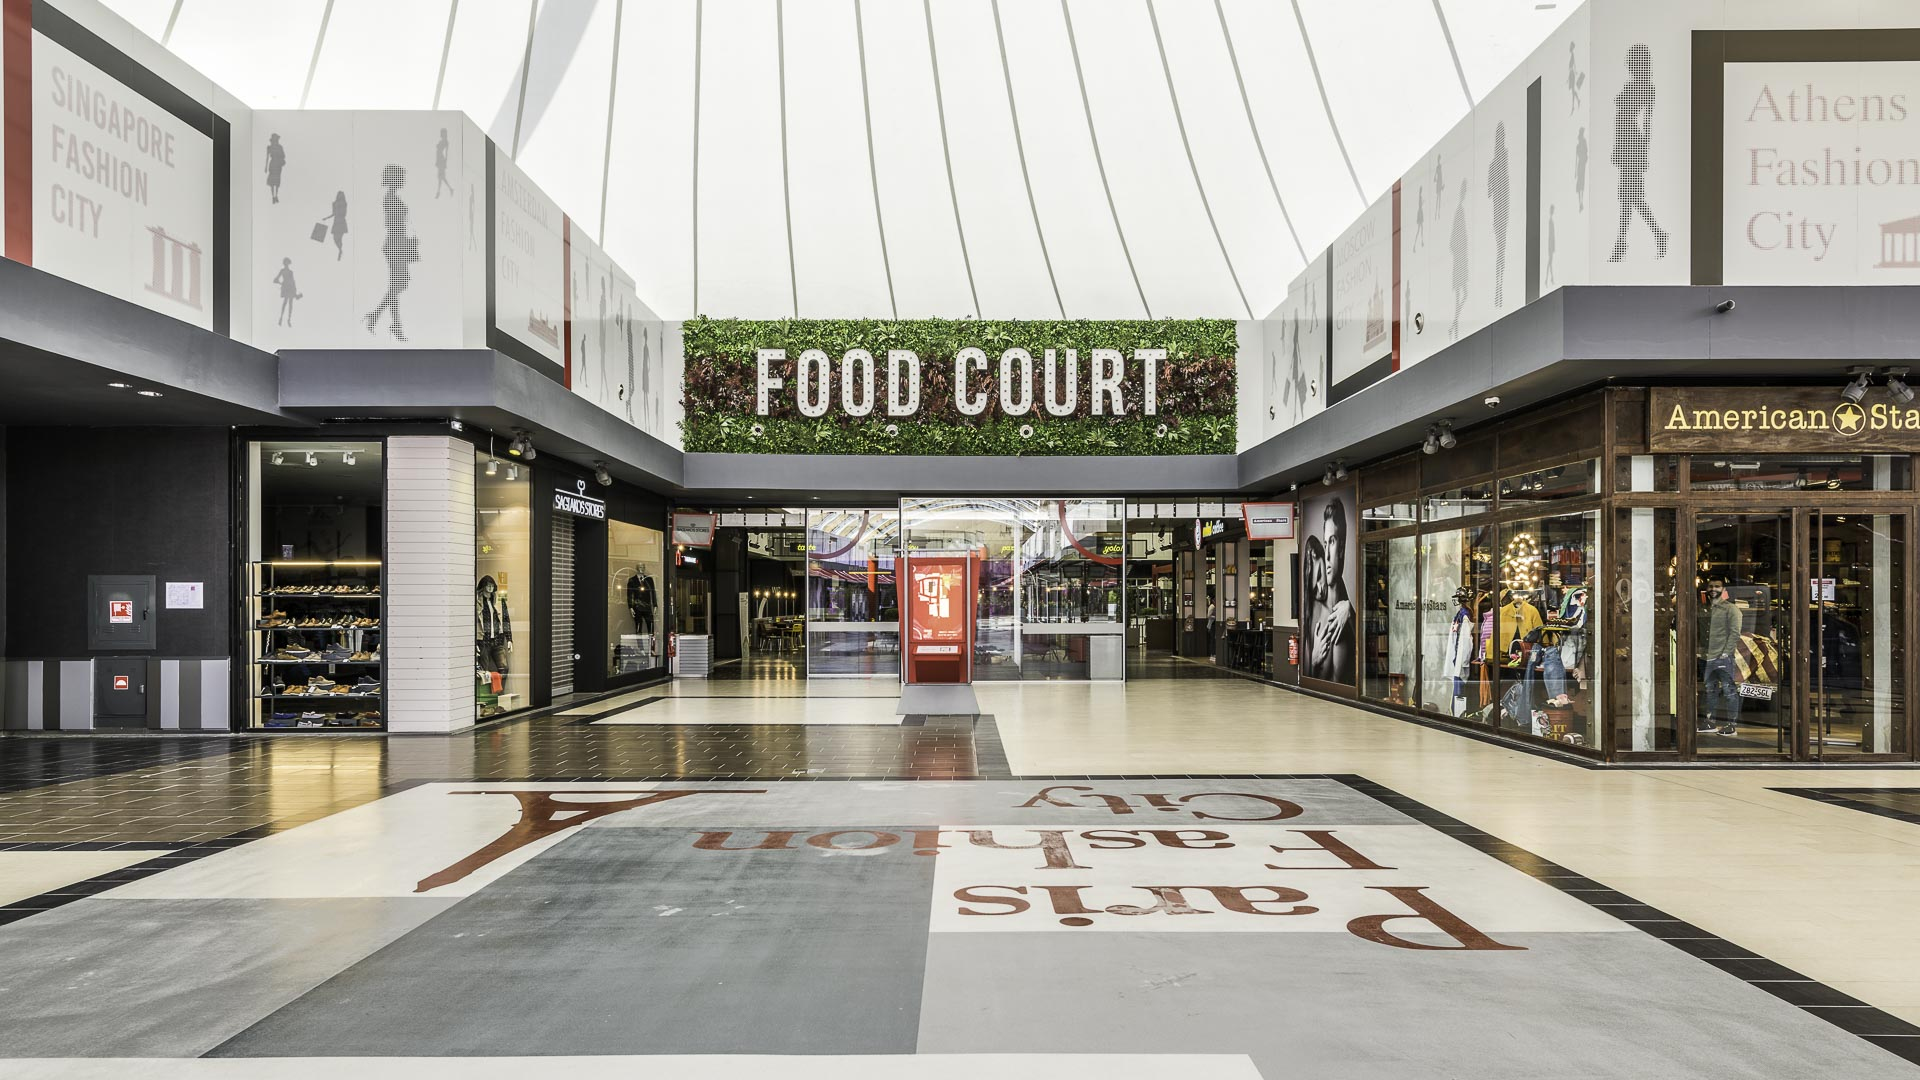 Fashion City Outlet Food Court